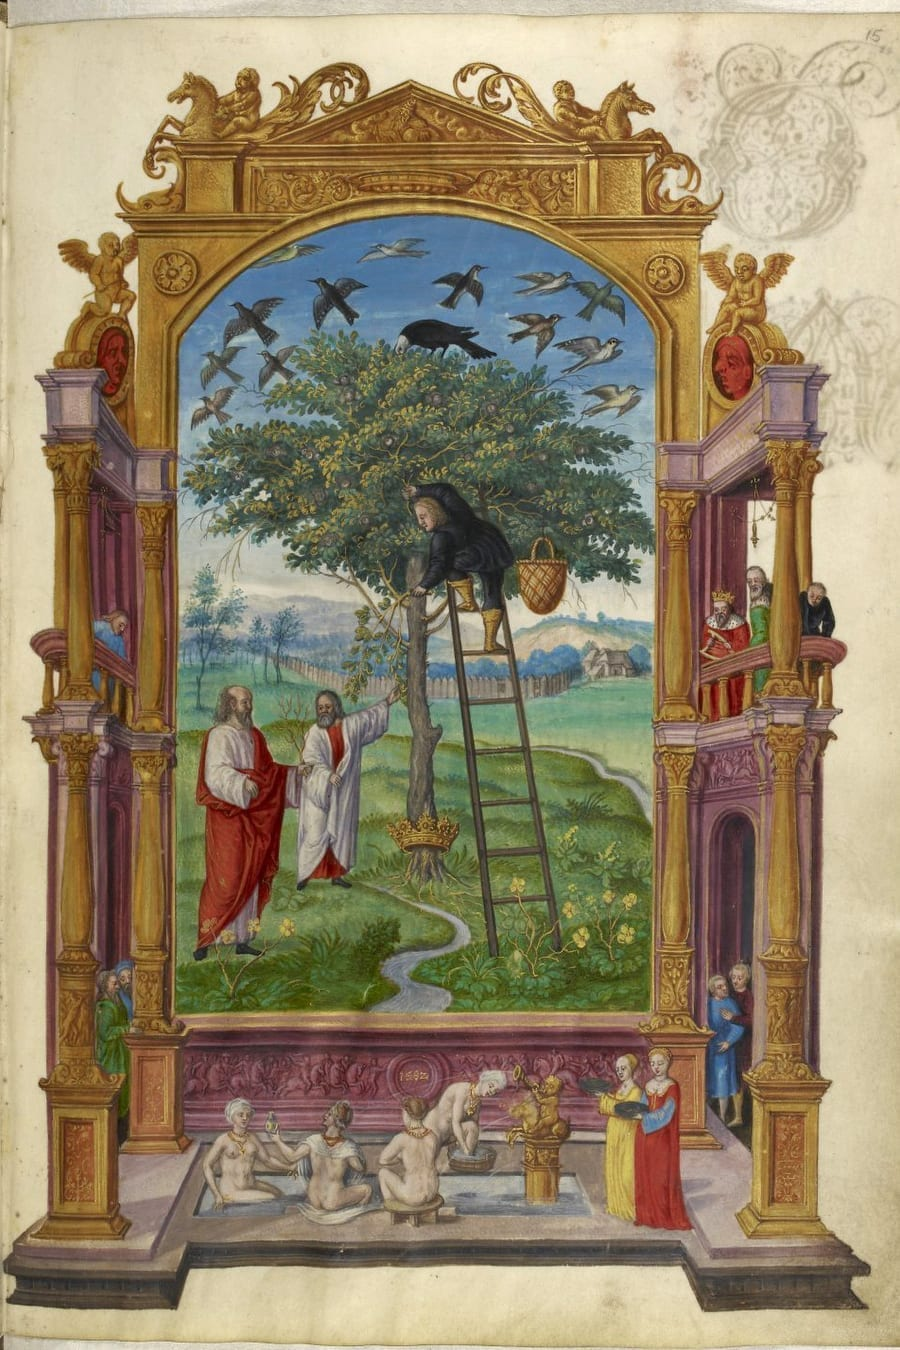 Illustration of mining for gold from the Alchemical manuscript Splendor Solis